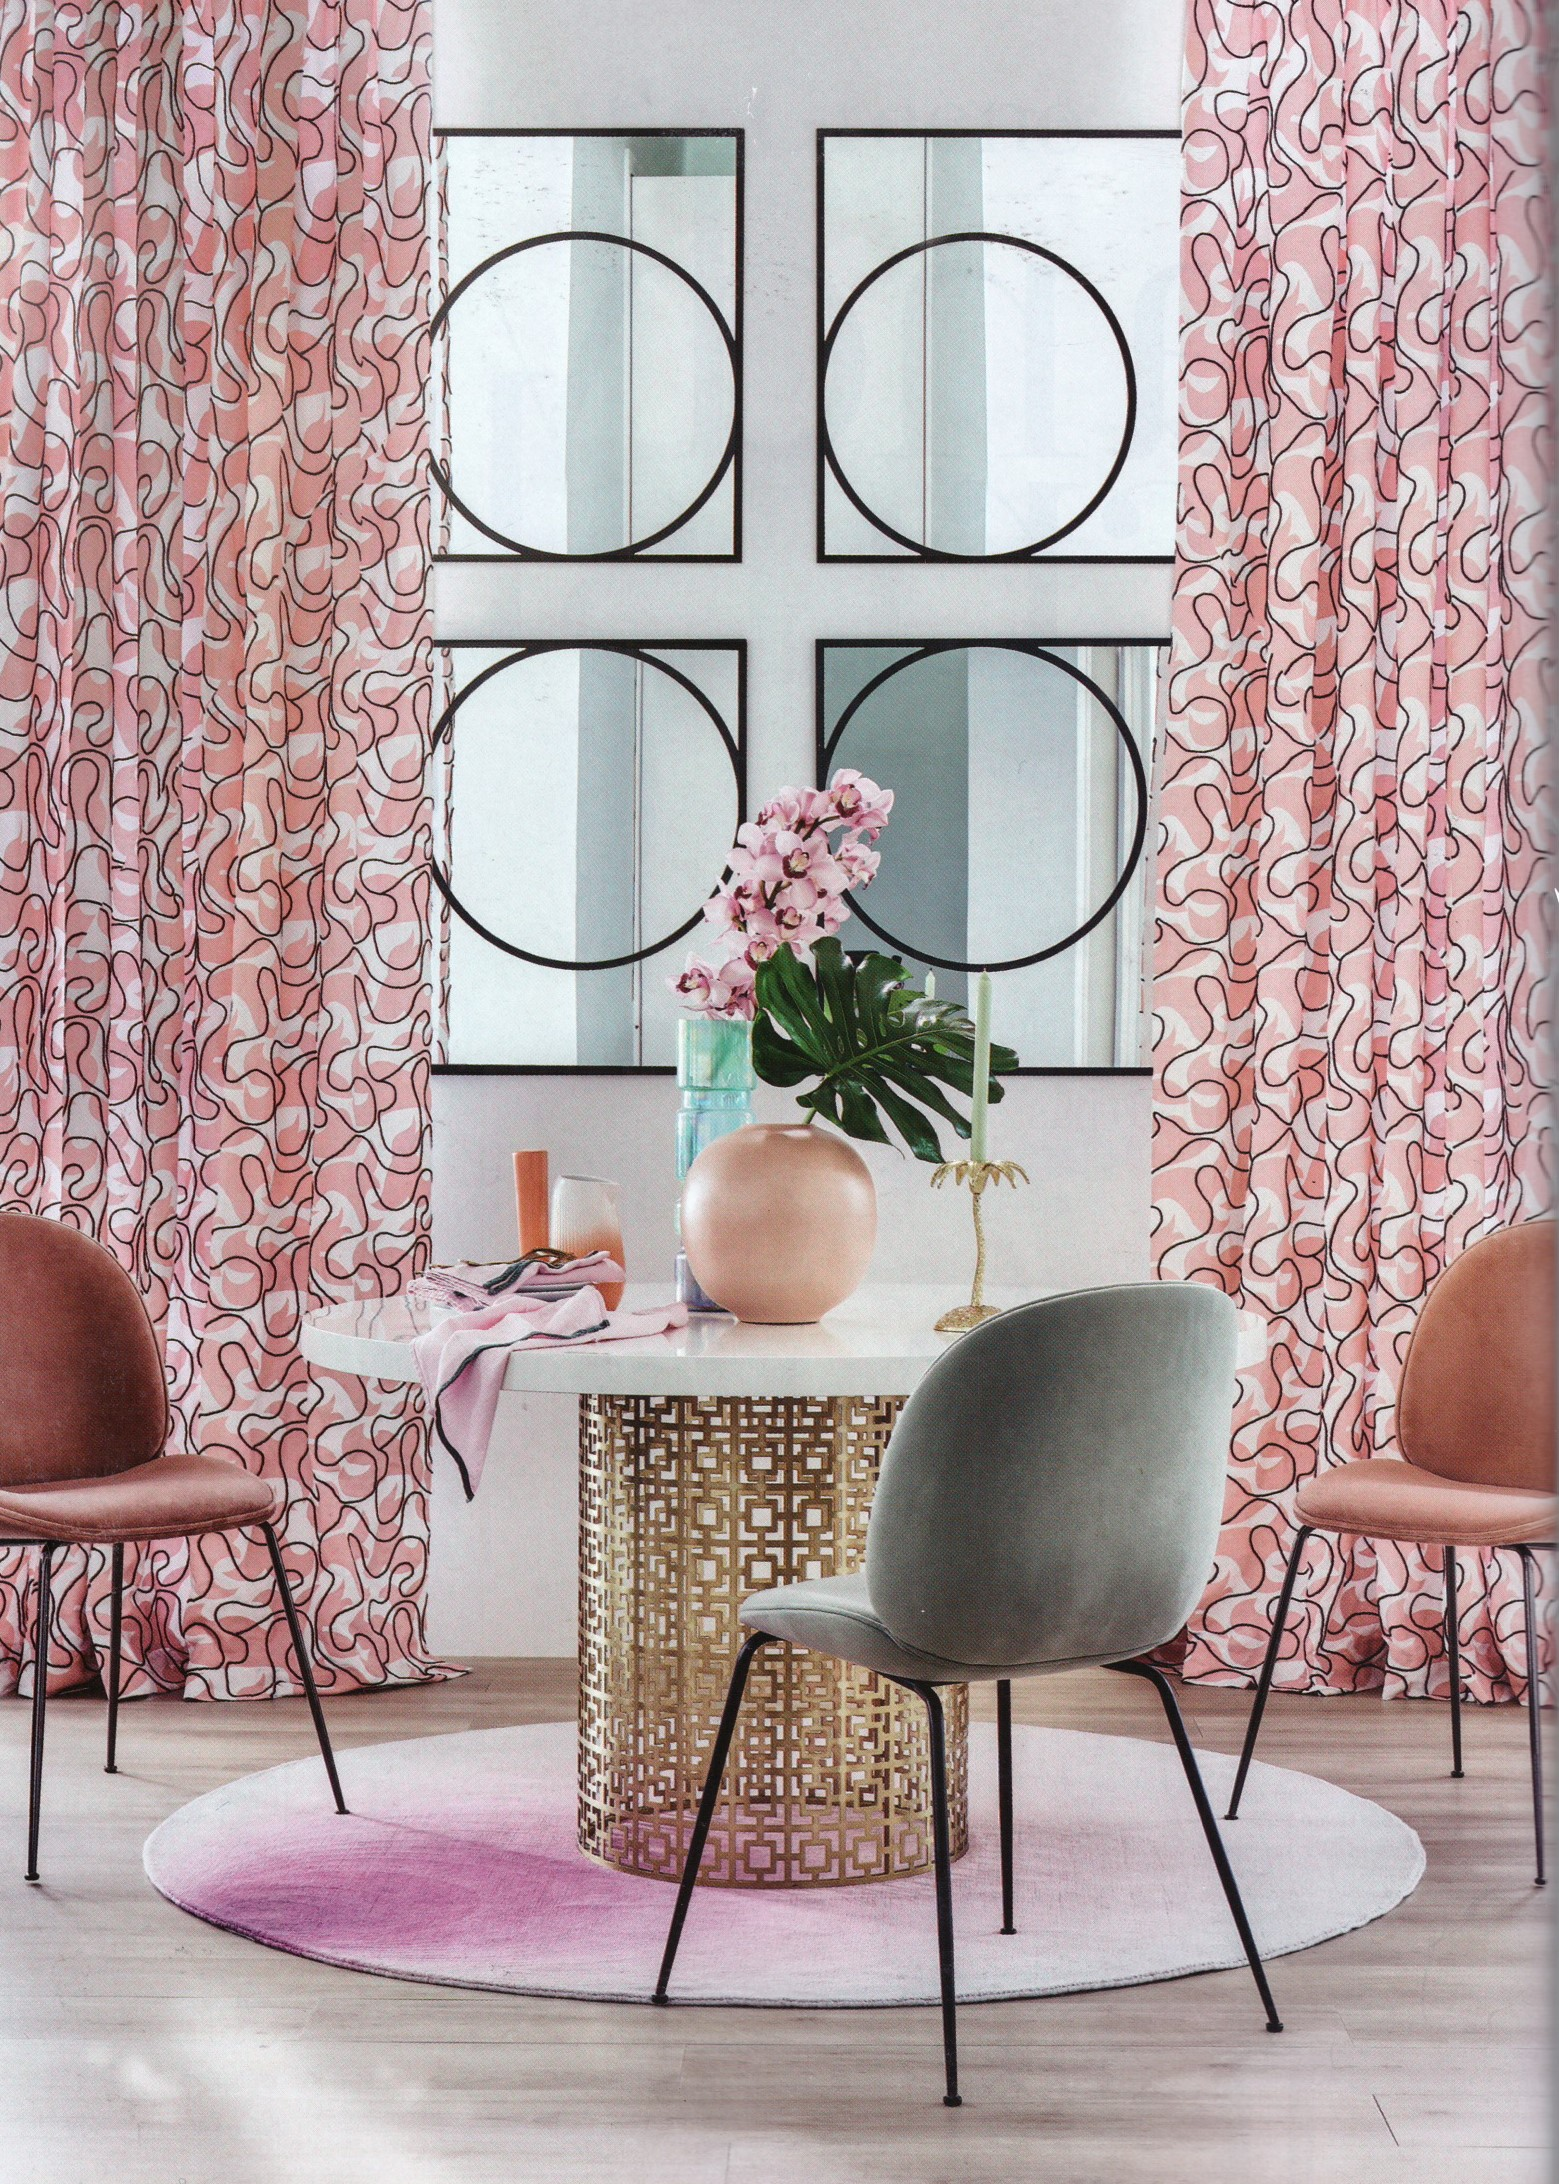 We've got a candy crush on Living etc's sorbet shoot, with Jonathan Adler's Nixon dining table taking centre stage